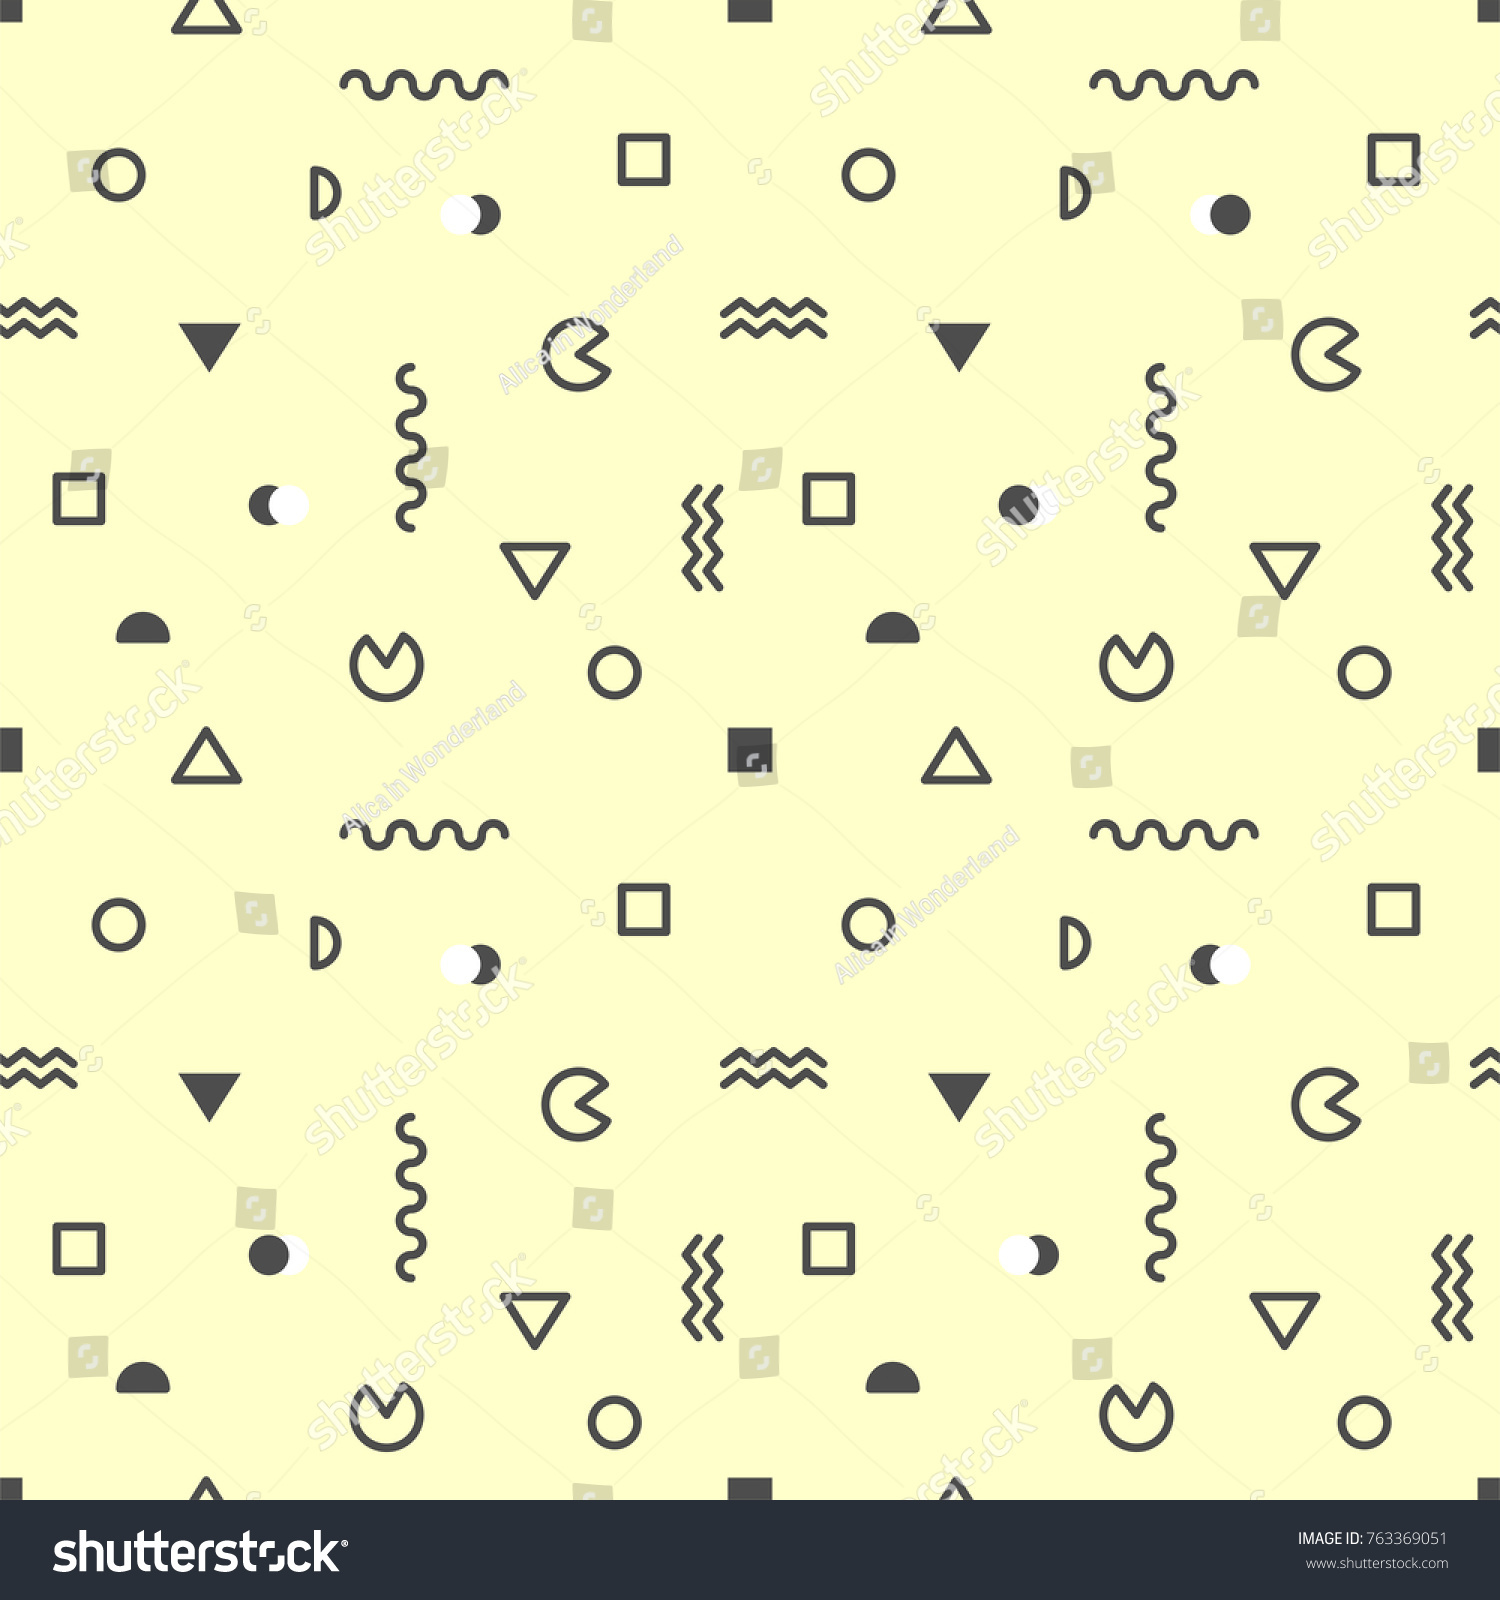 black geometric shapes on yellow background stock vector 763369051